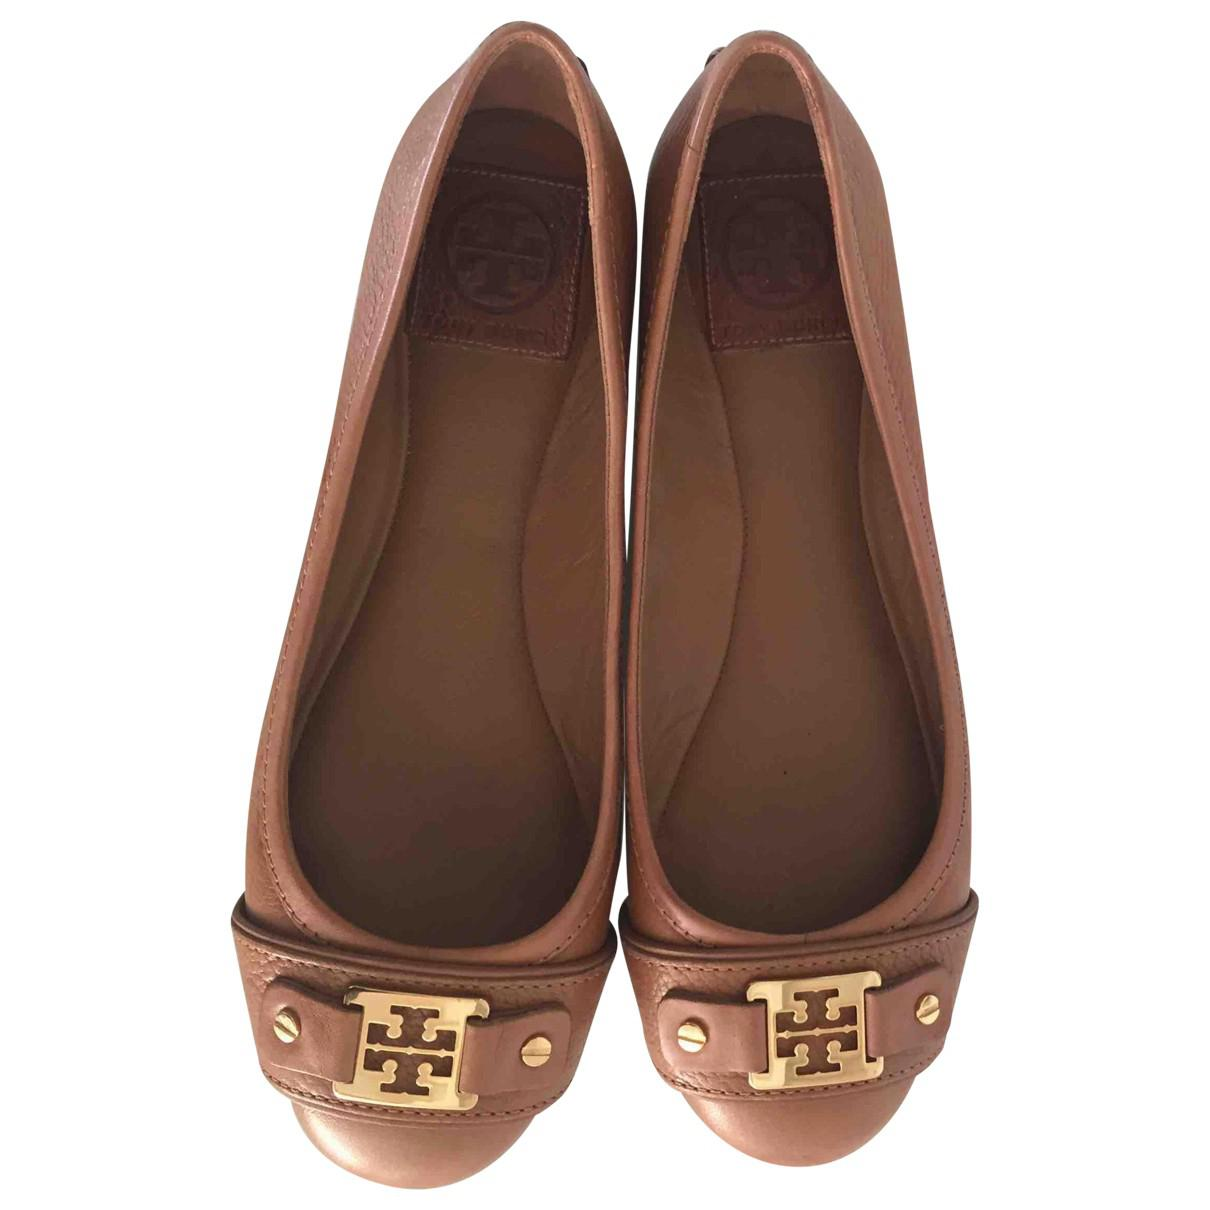 c04826e4a00d Tory Burch Pre-owned Leather Ballet Flats in Brown - Lyst